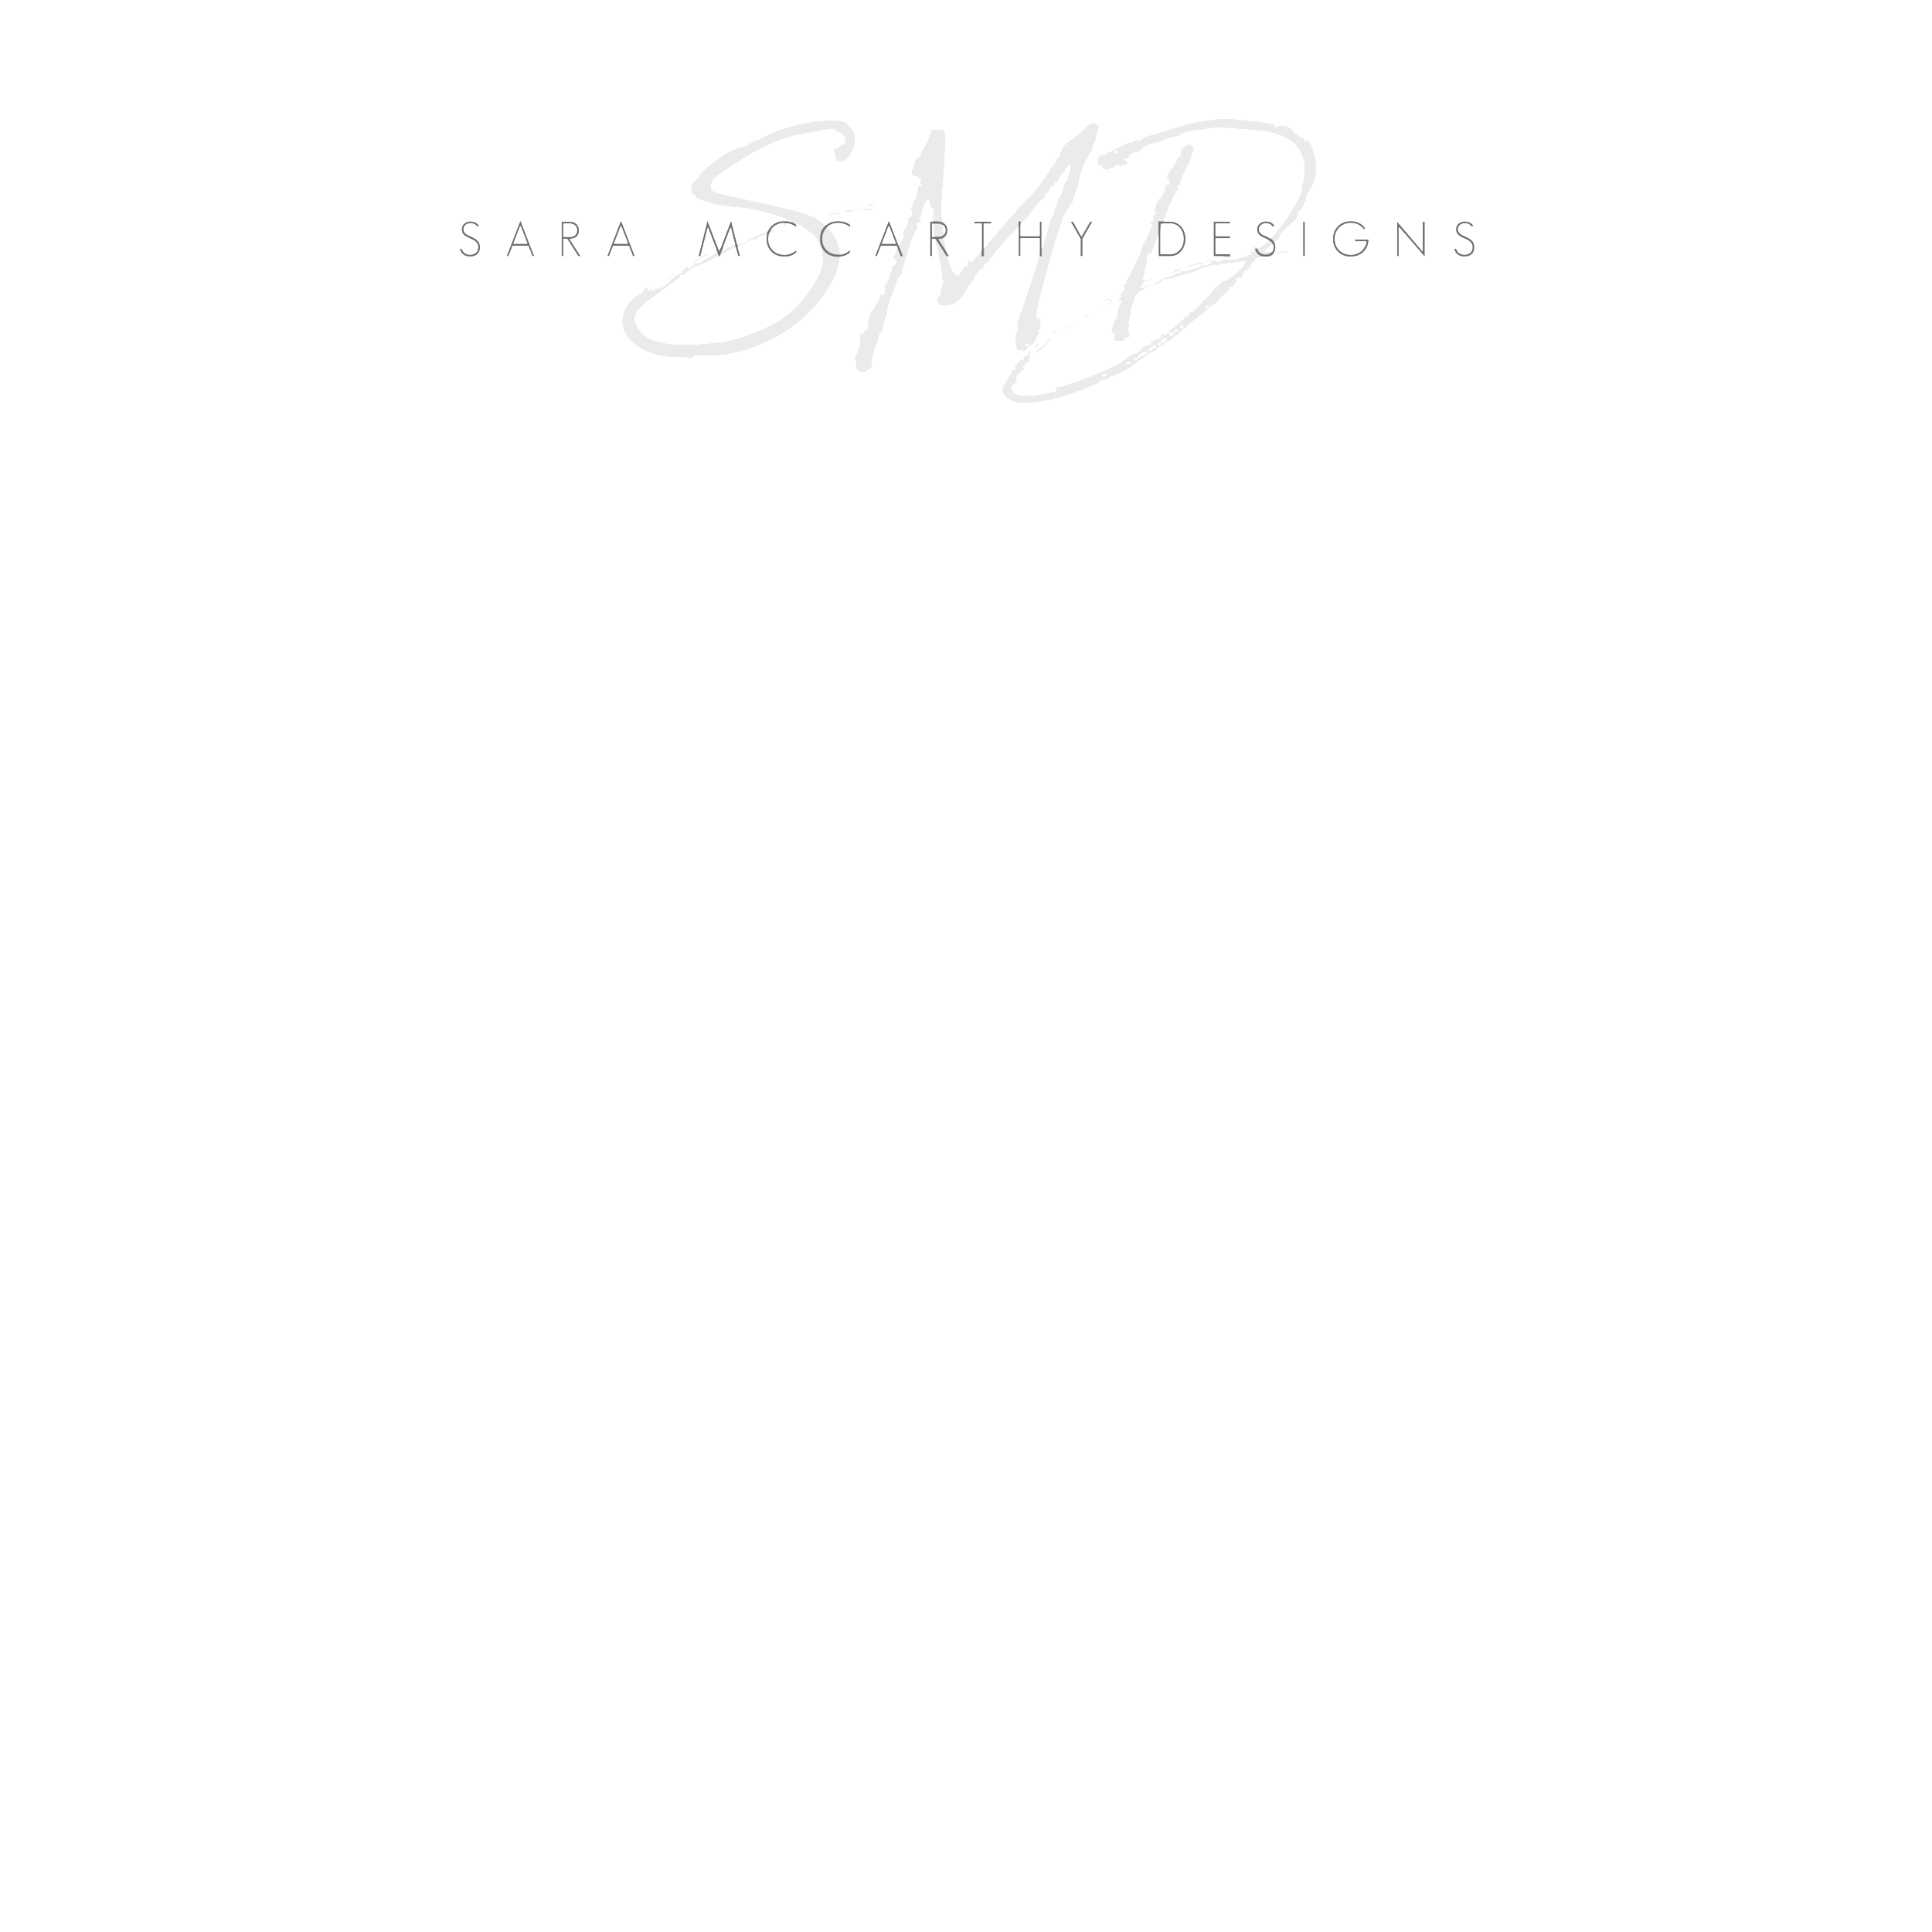 smd_logo_alternate.png